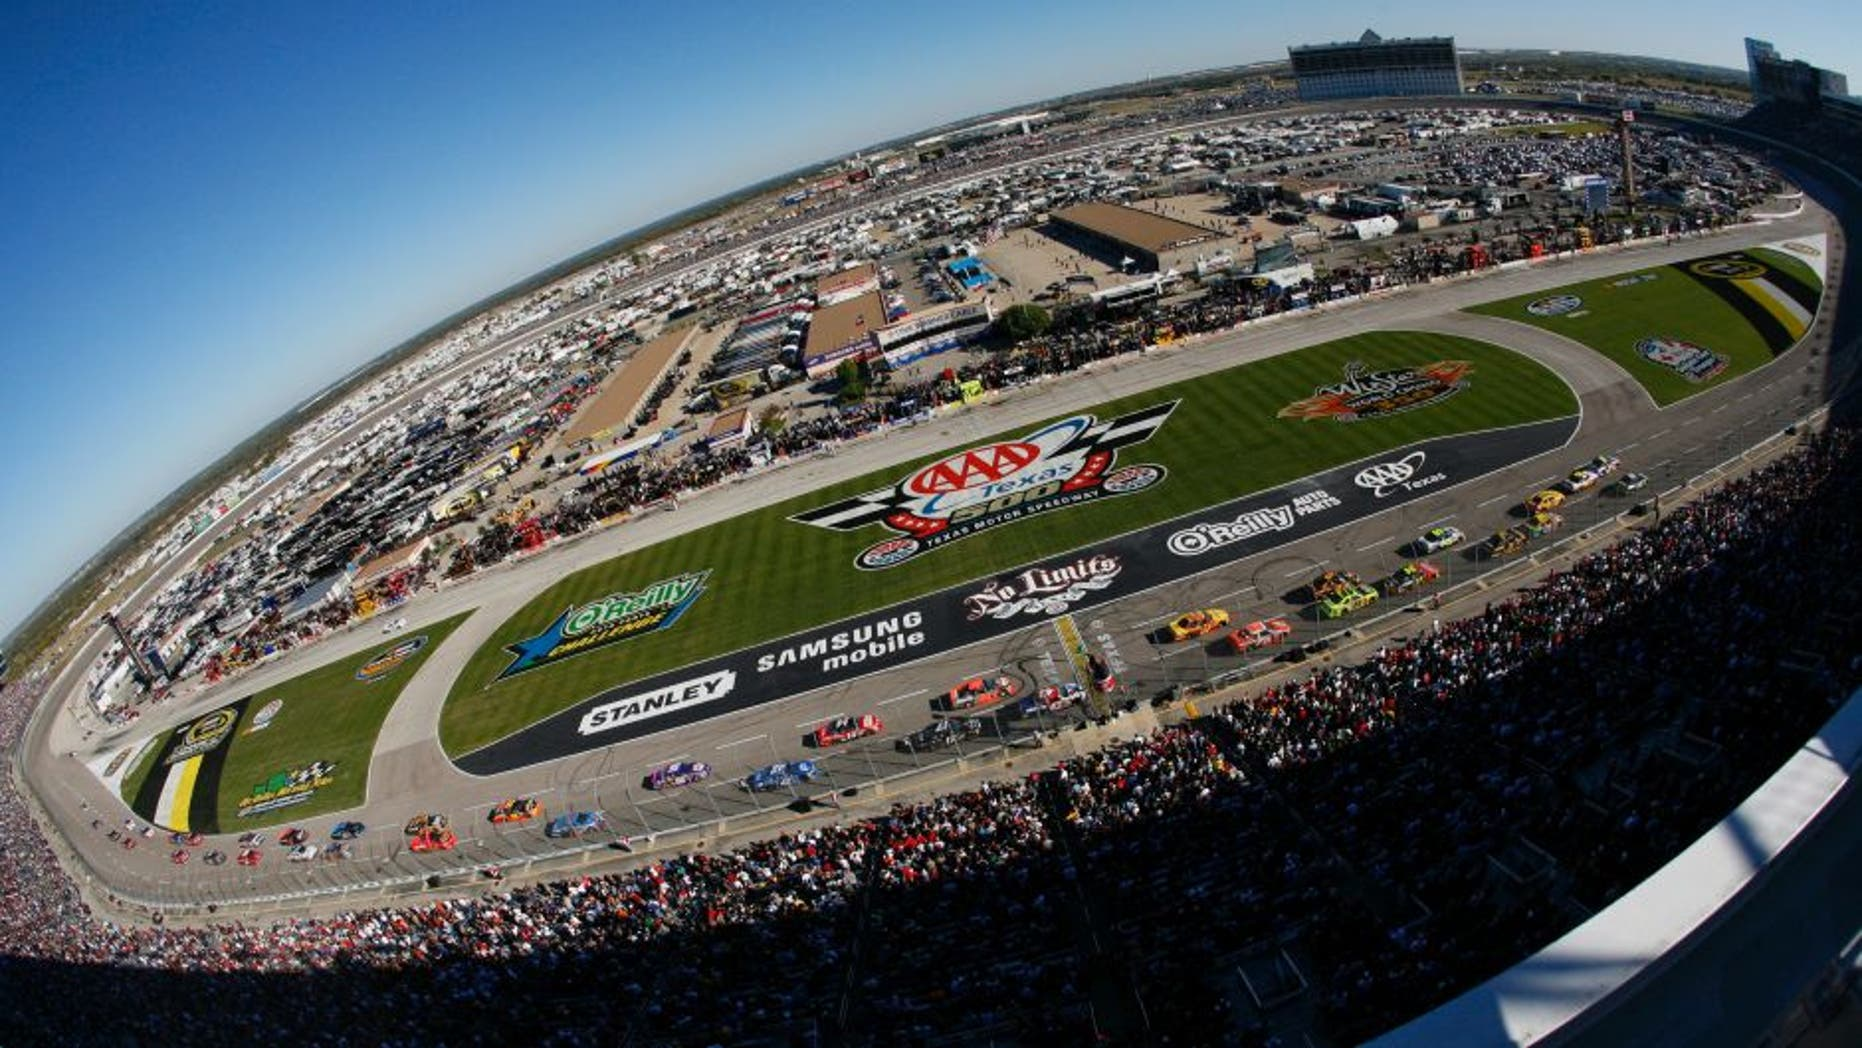 texas motor speedway track renovation entering final stages | fox news